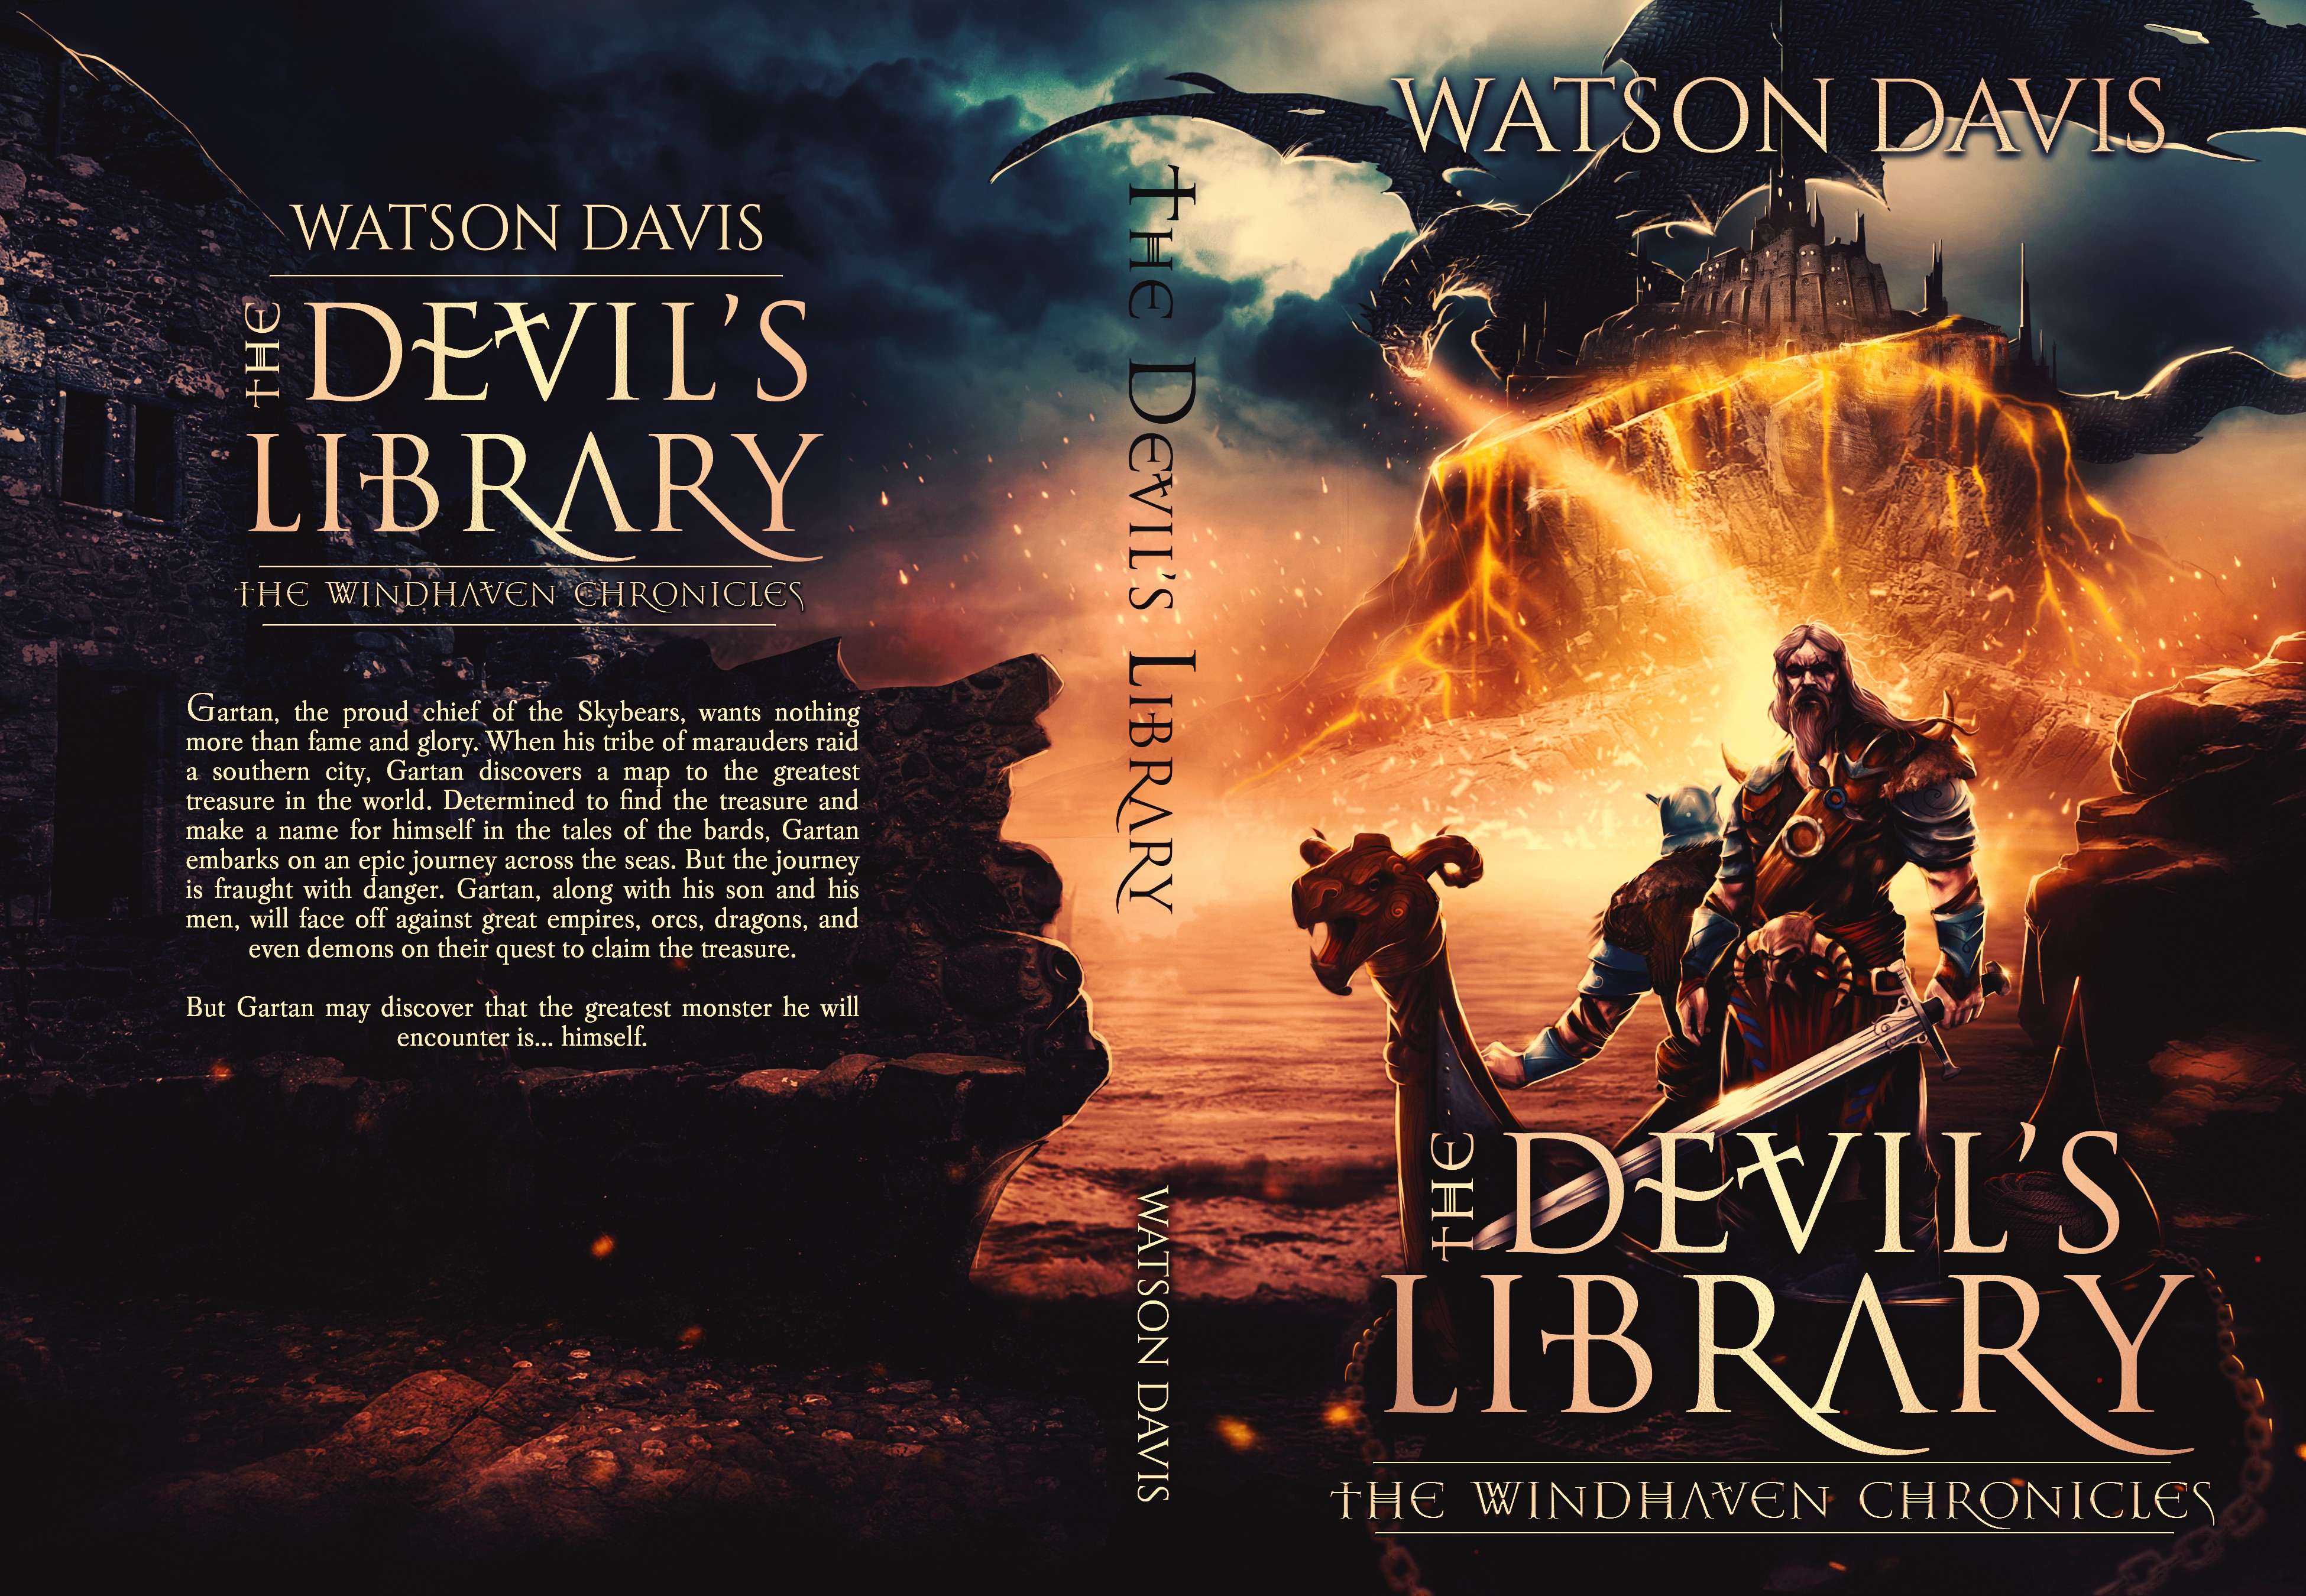 Book Cover for The Devil's Library (Swords and Sorcery/Dark Fantasy)